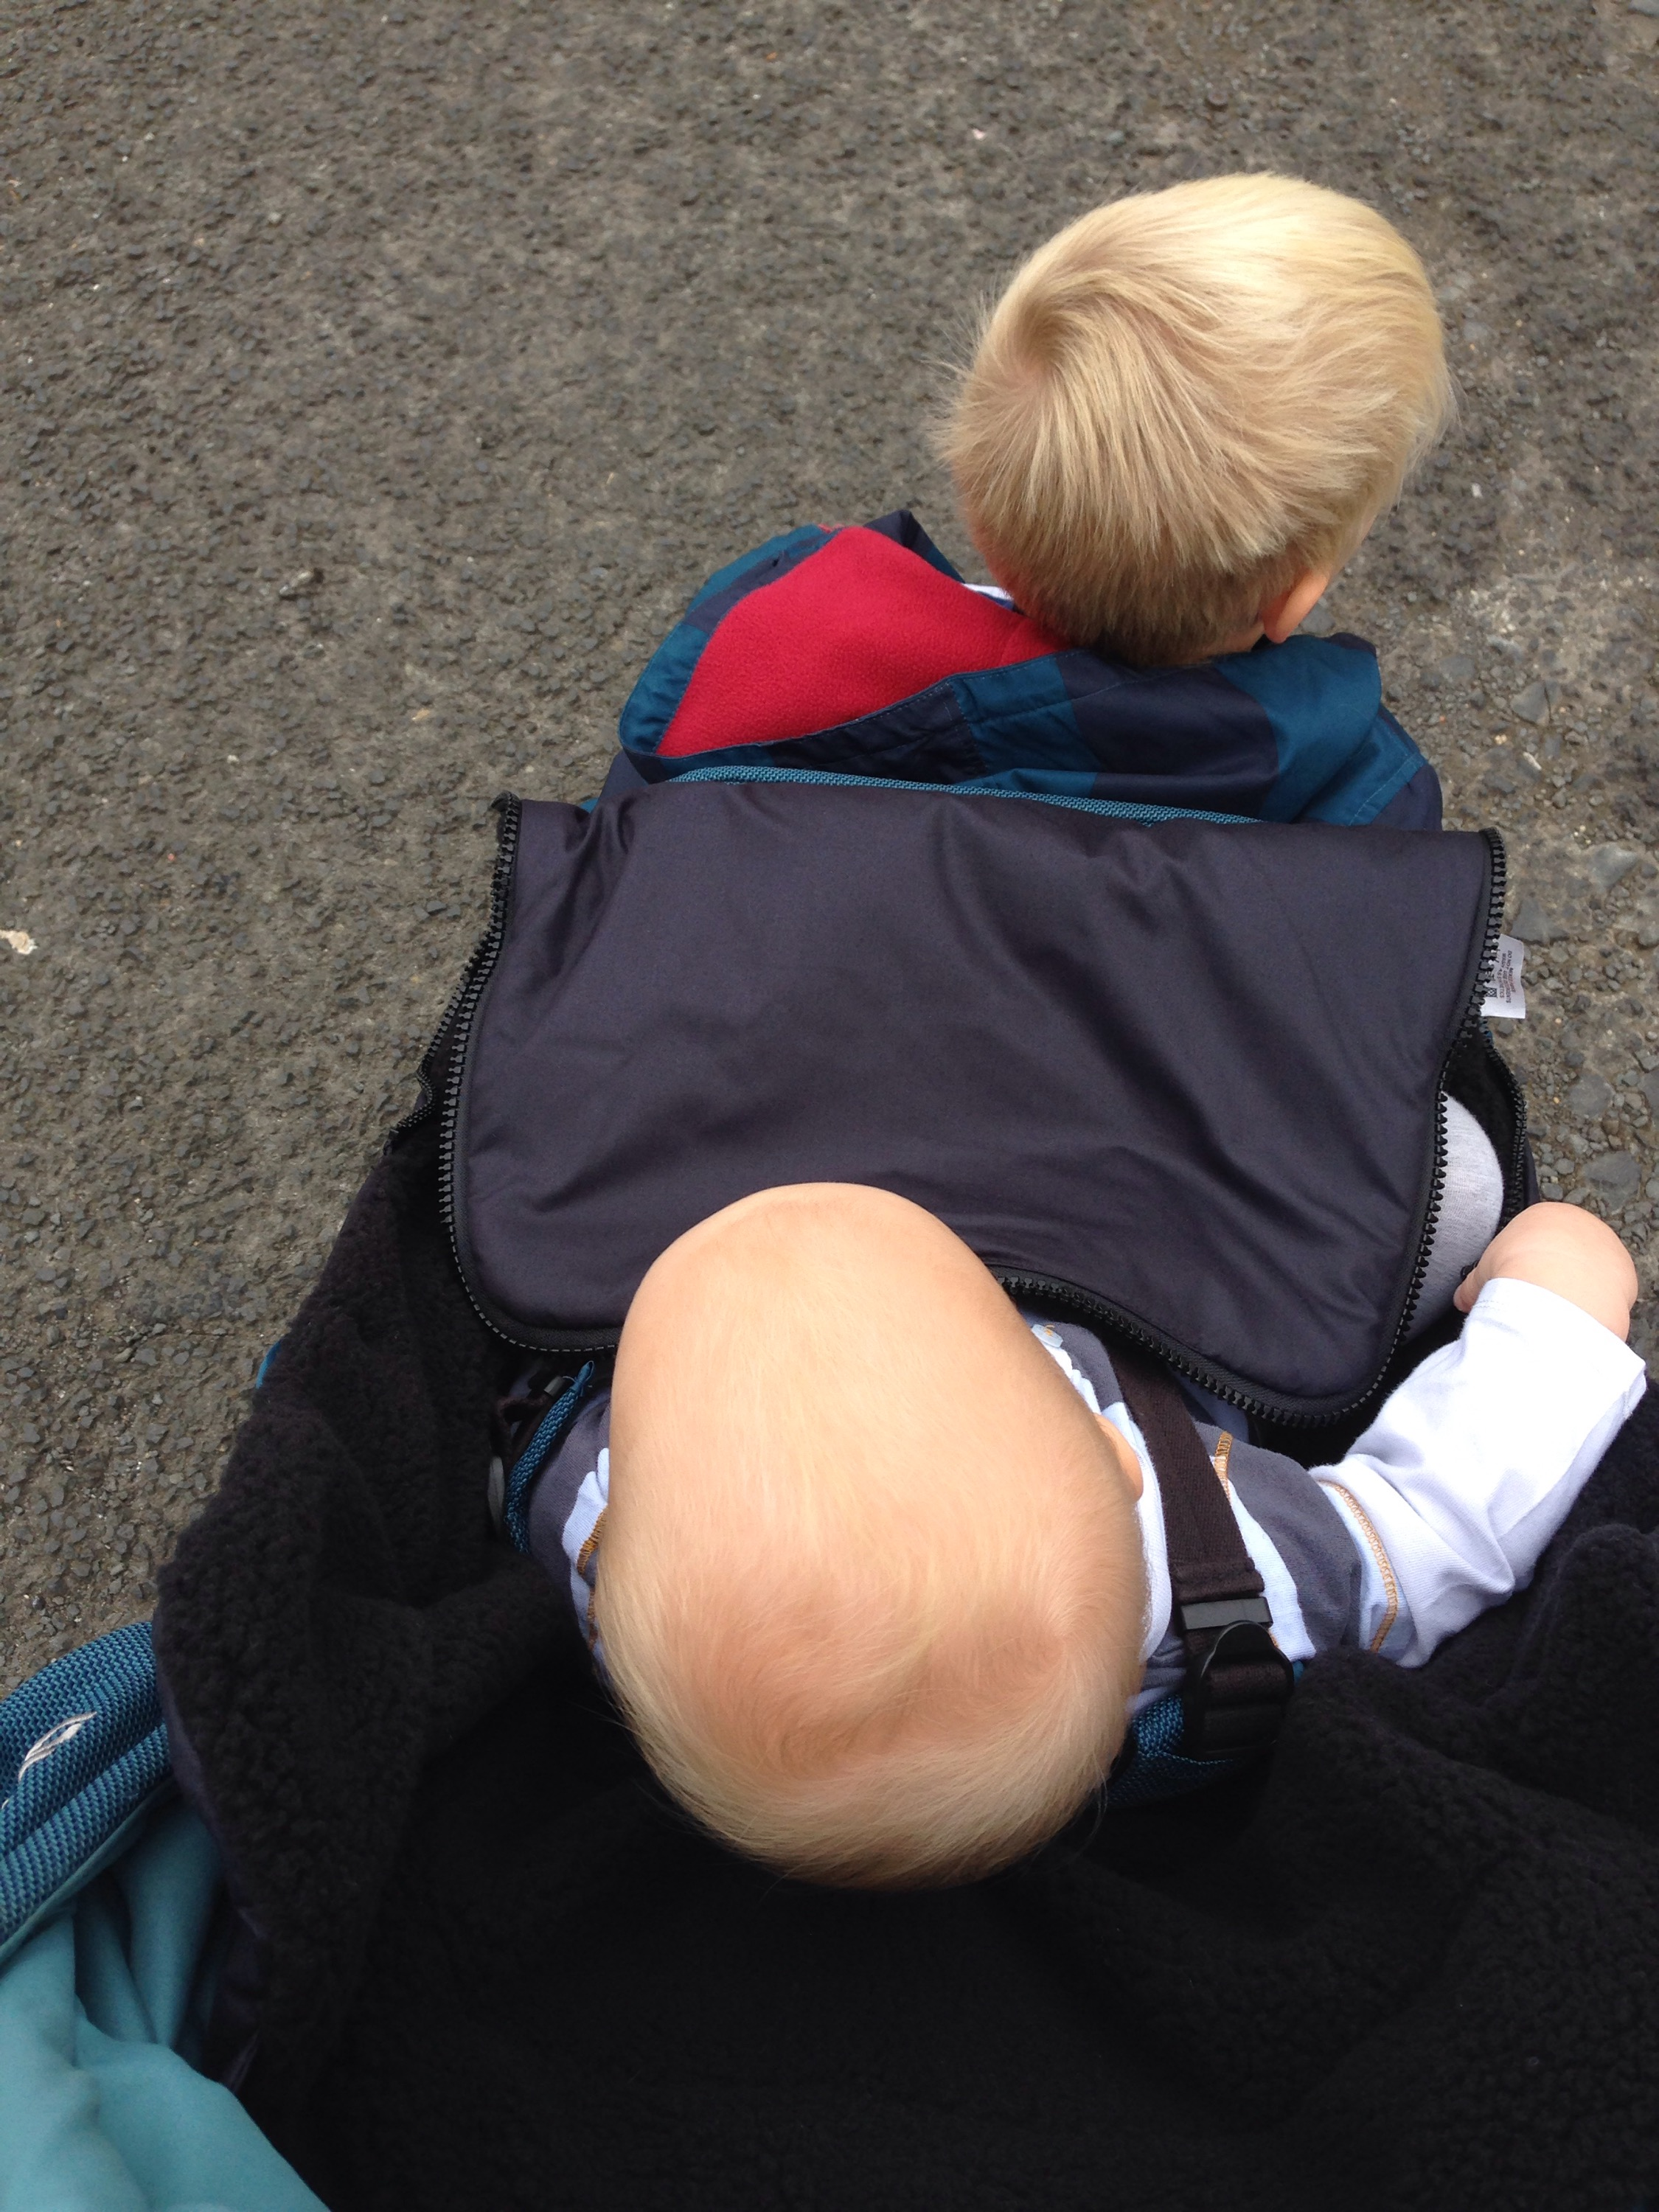 nuna pepp luxx out n about footmuff cosytoes toddler baby